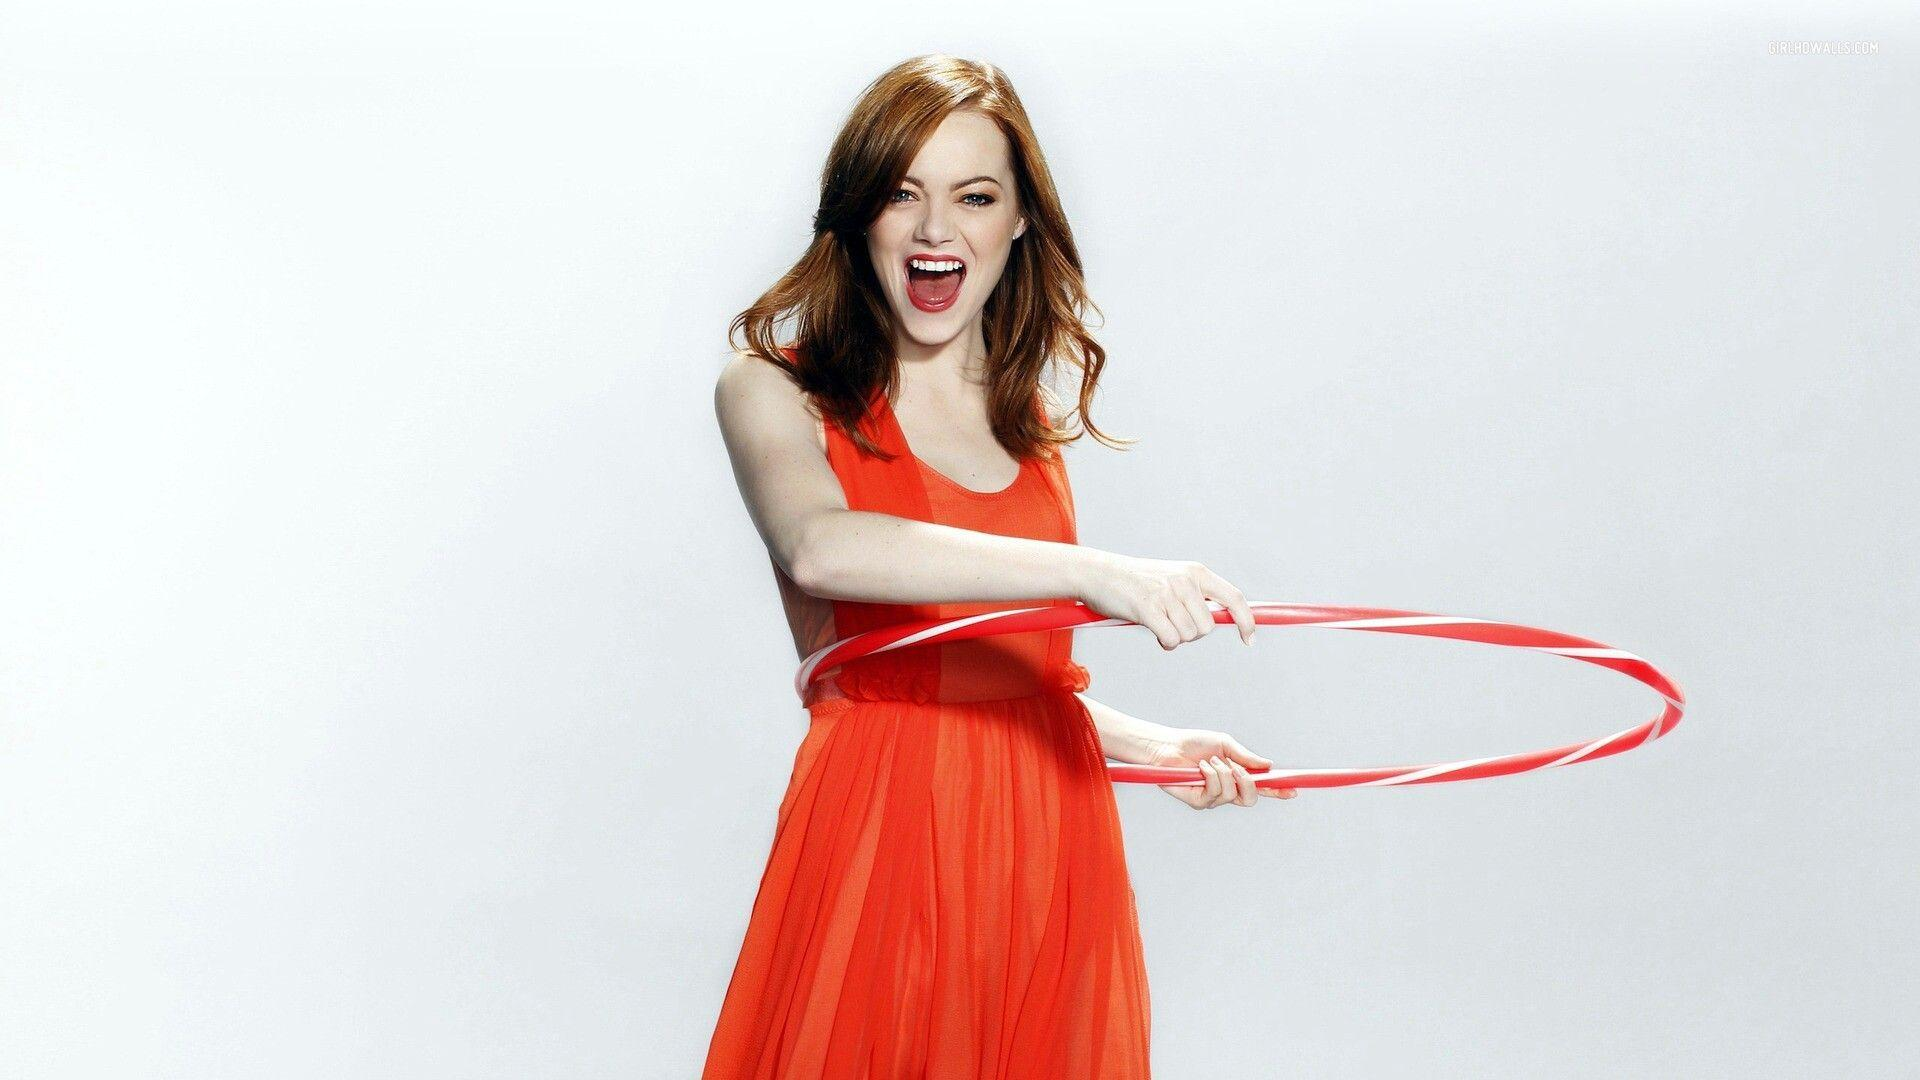 My new wallpapers : EmmaStone